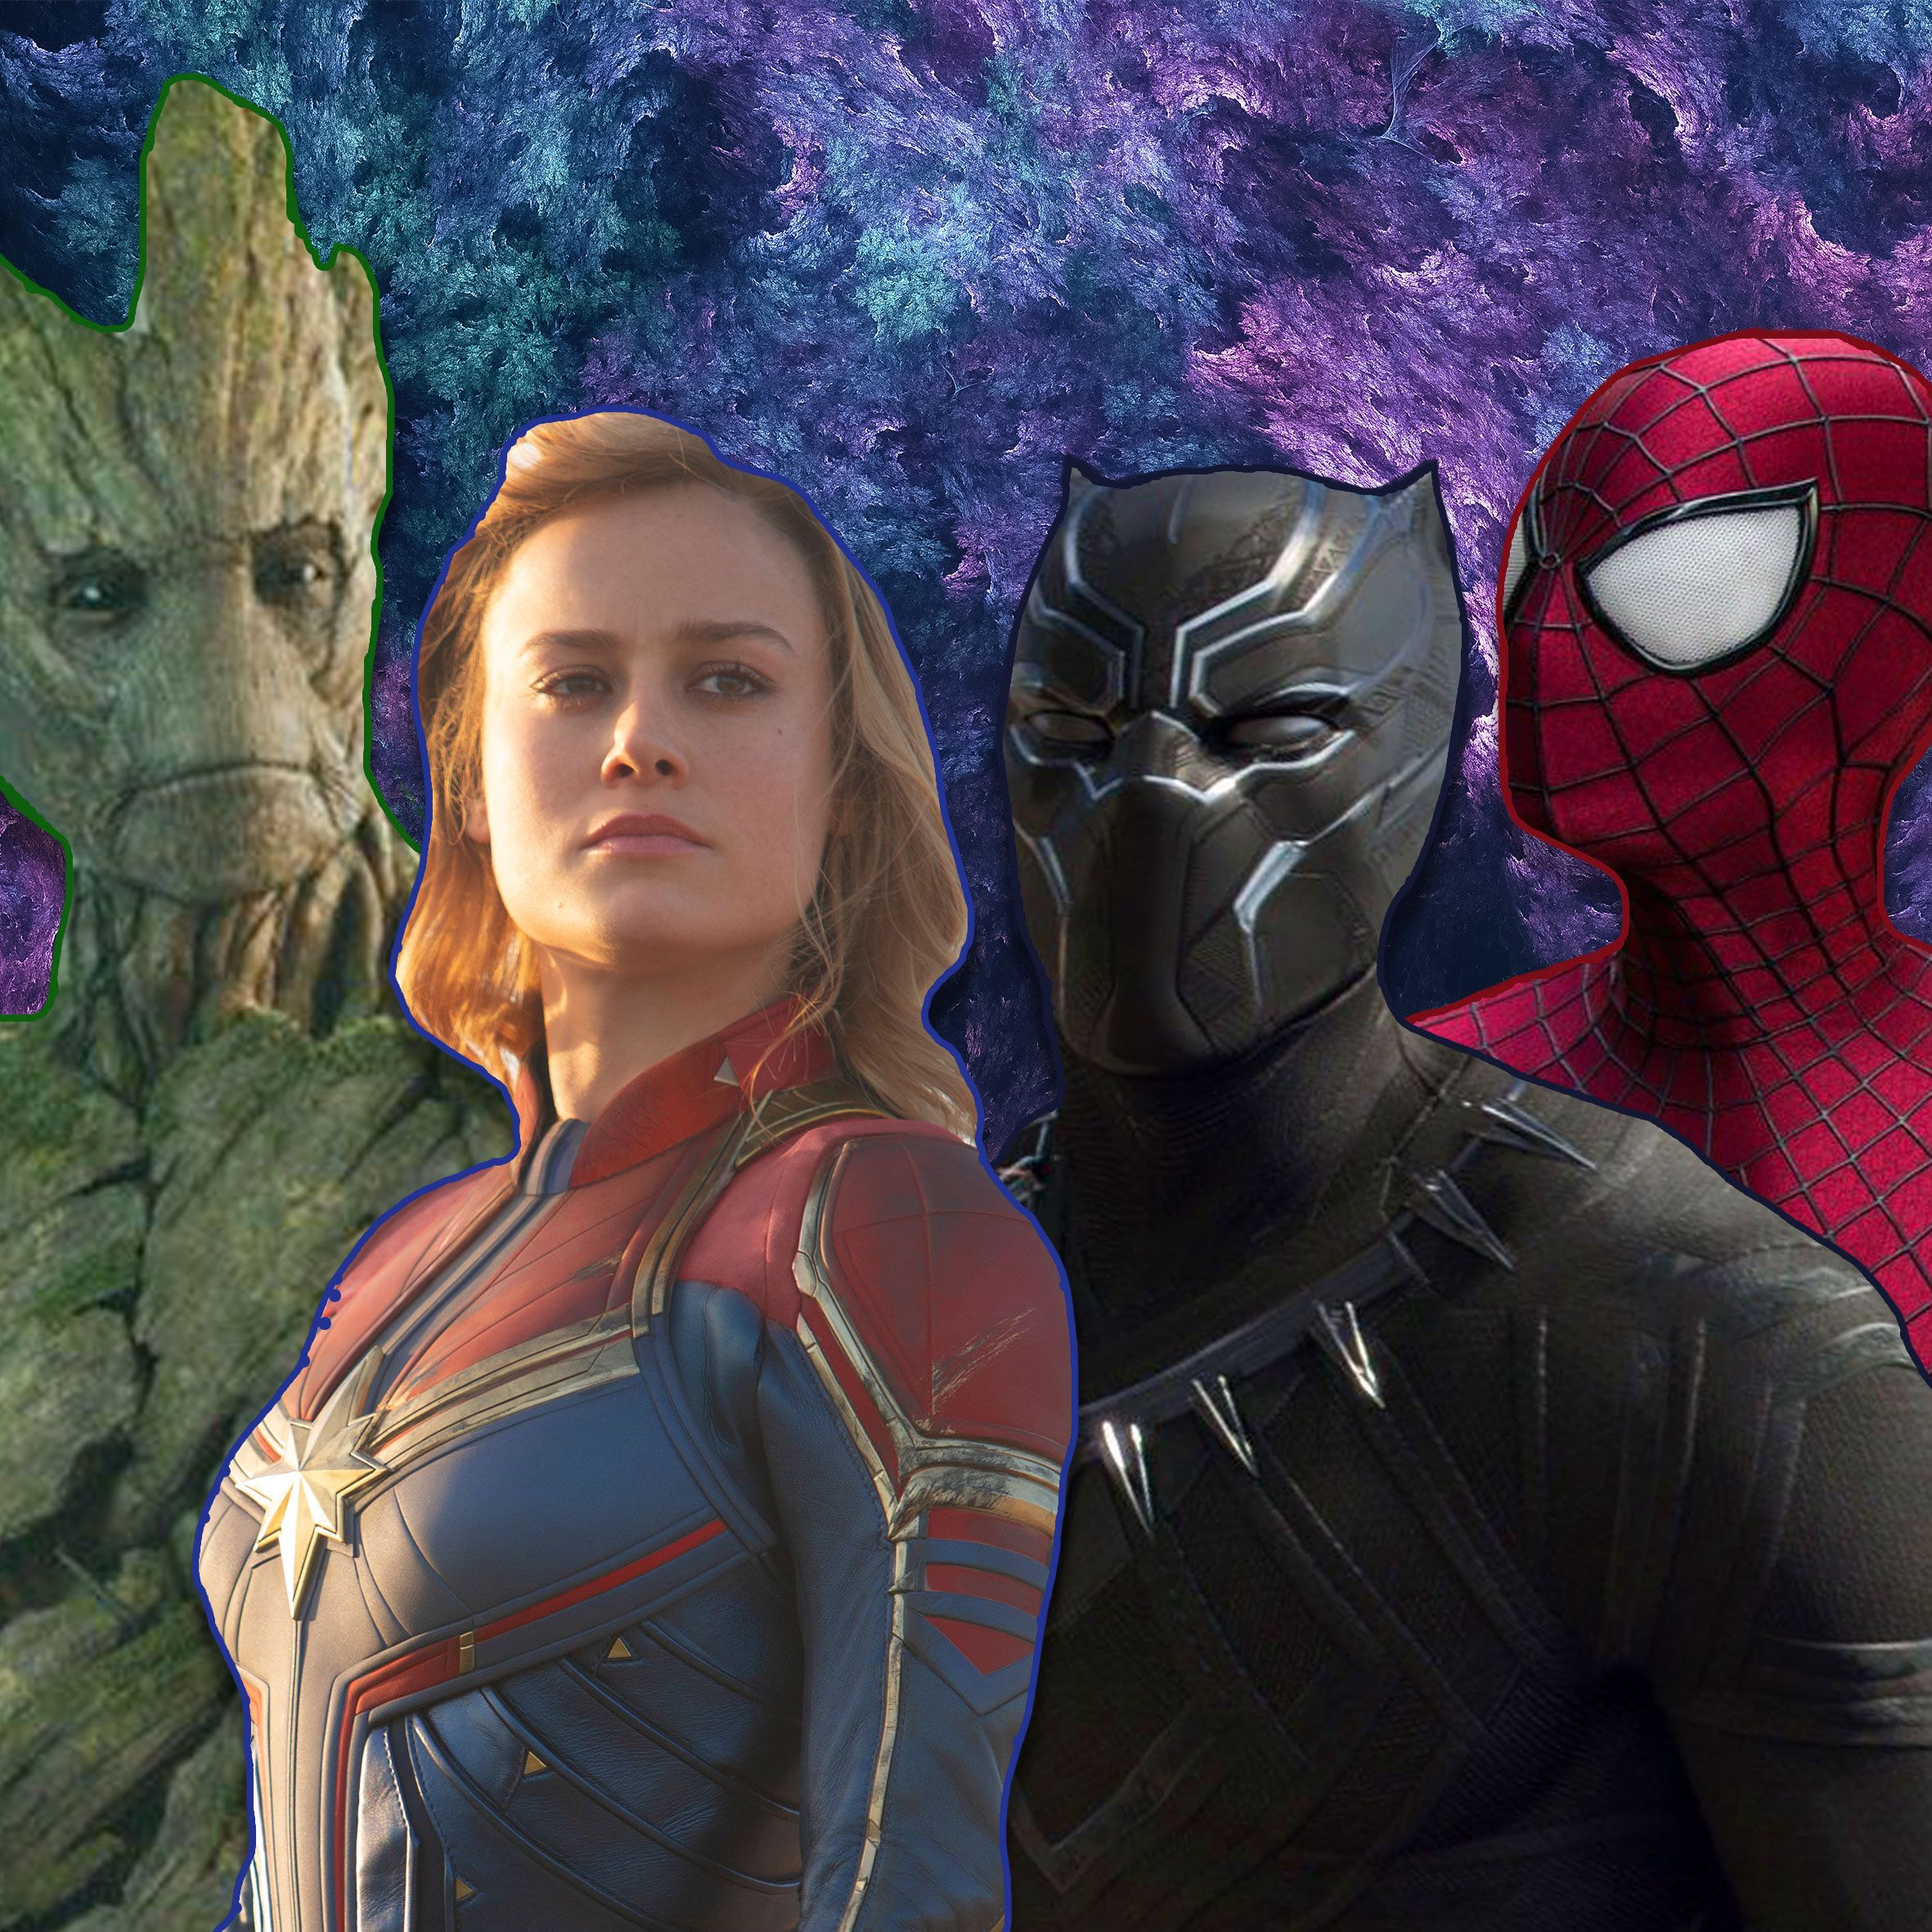 What's likely to happen in Marvel Phase 5?